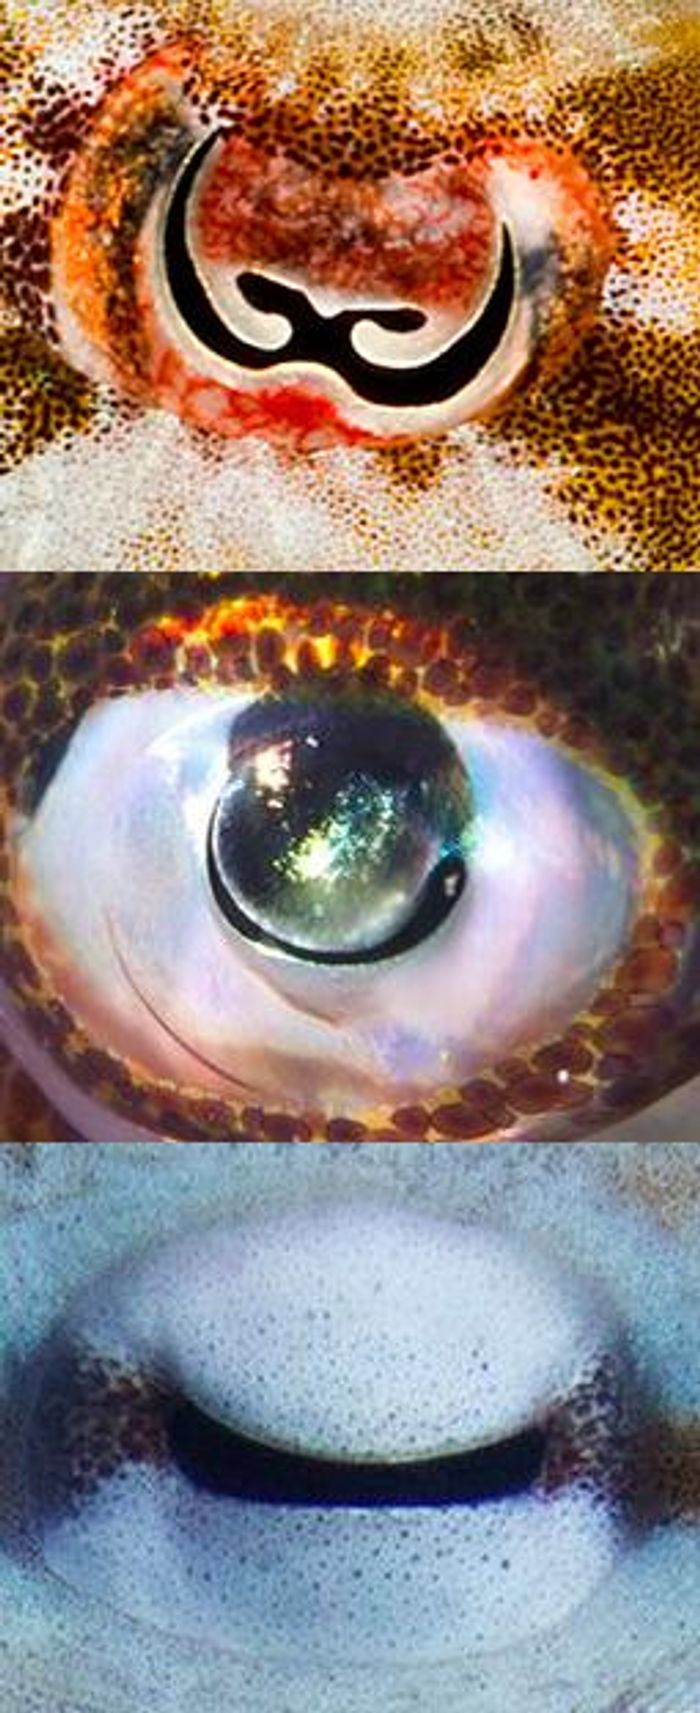 The unusual pupils of cephalopods (from top, a cuttlefish Sepia bandensis; squid Sepioteuthis; and Octopus vulgaris) allow light into the eye from many directions, which spreads out the colors and allows the creatures to determine color, even though they are technically colorblind. / Credit: Photos by Roy Caldwell, Klaus Stiefel, Alexander Stubbs, respectively